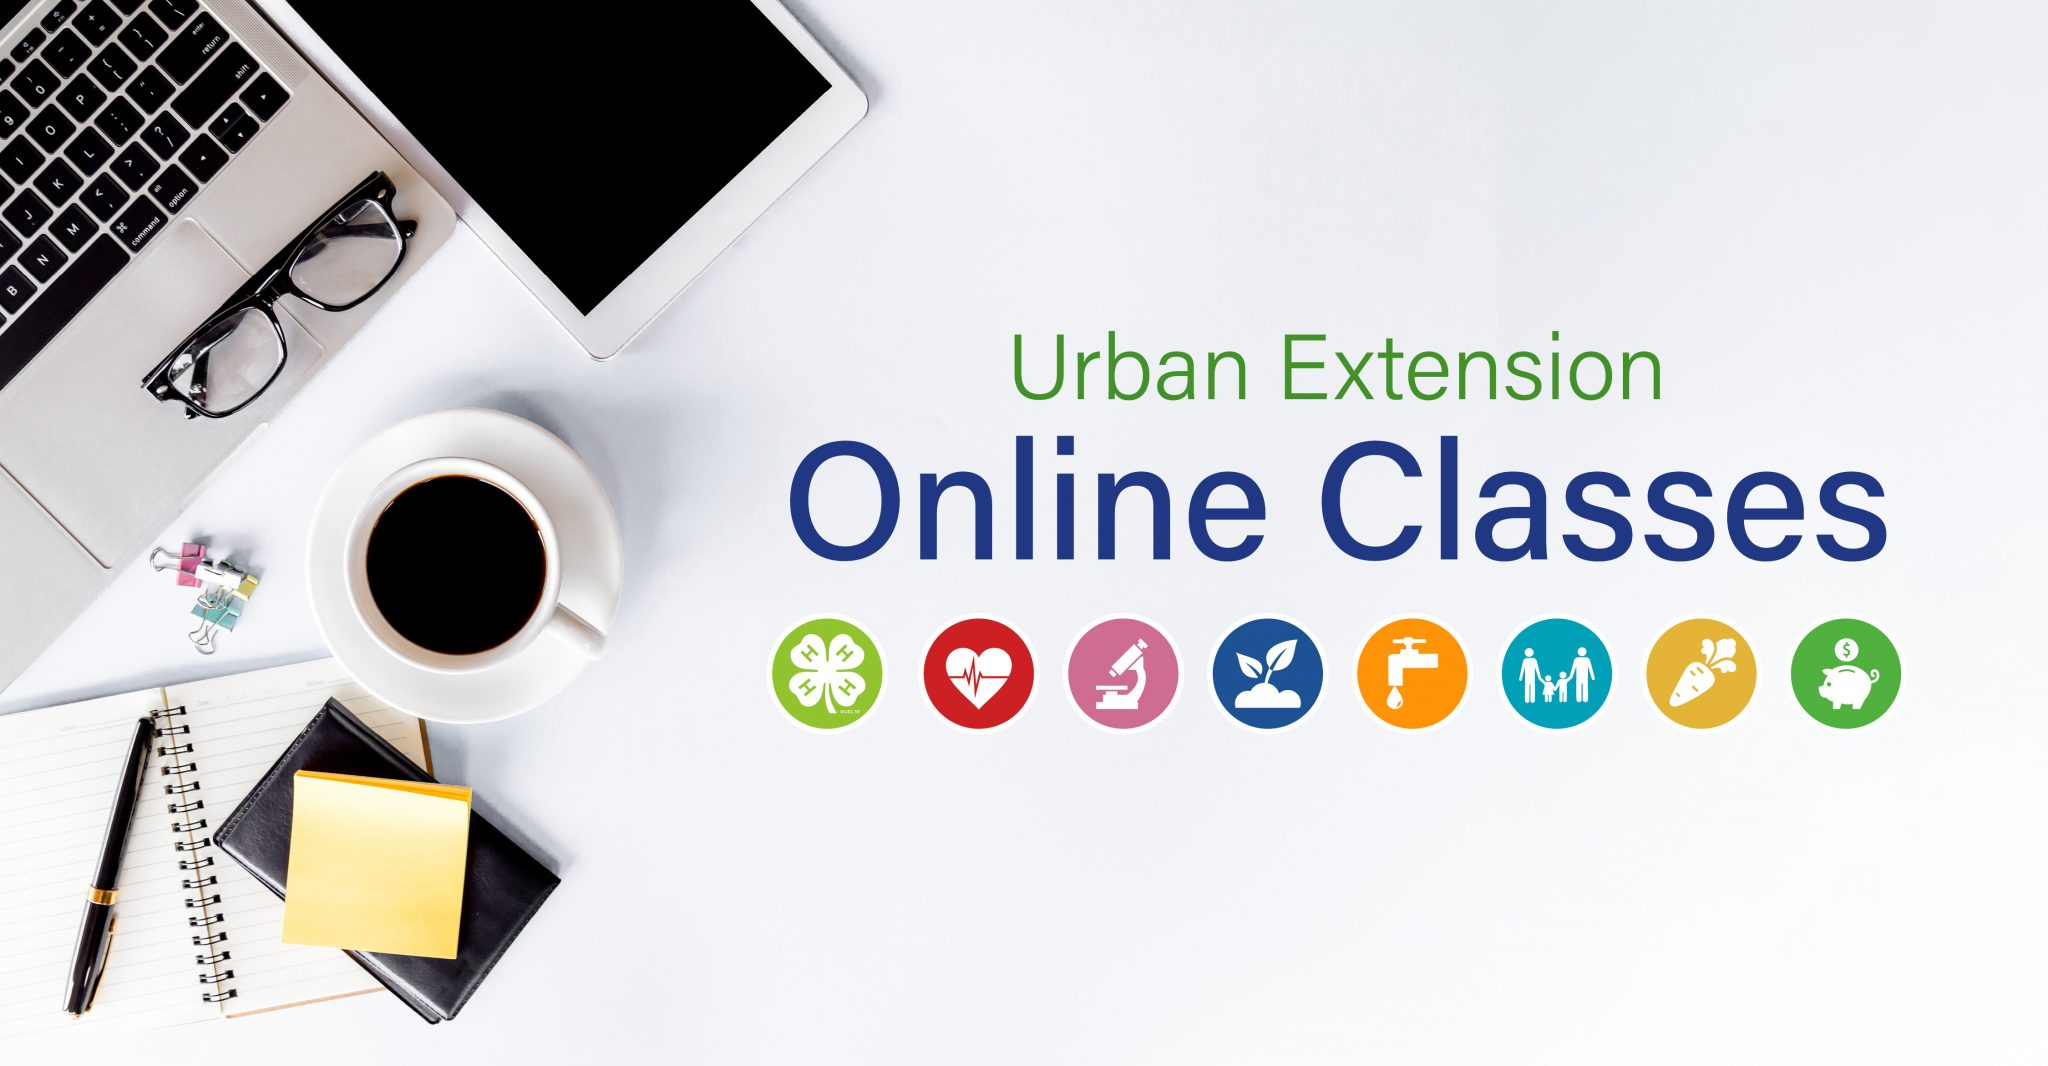 Computer, tablet, coffee cup and notebook. Text: Urban Extension Online Classes